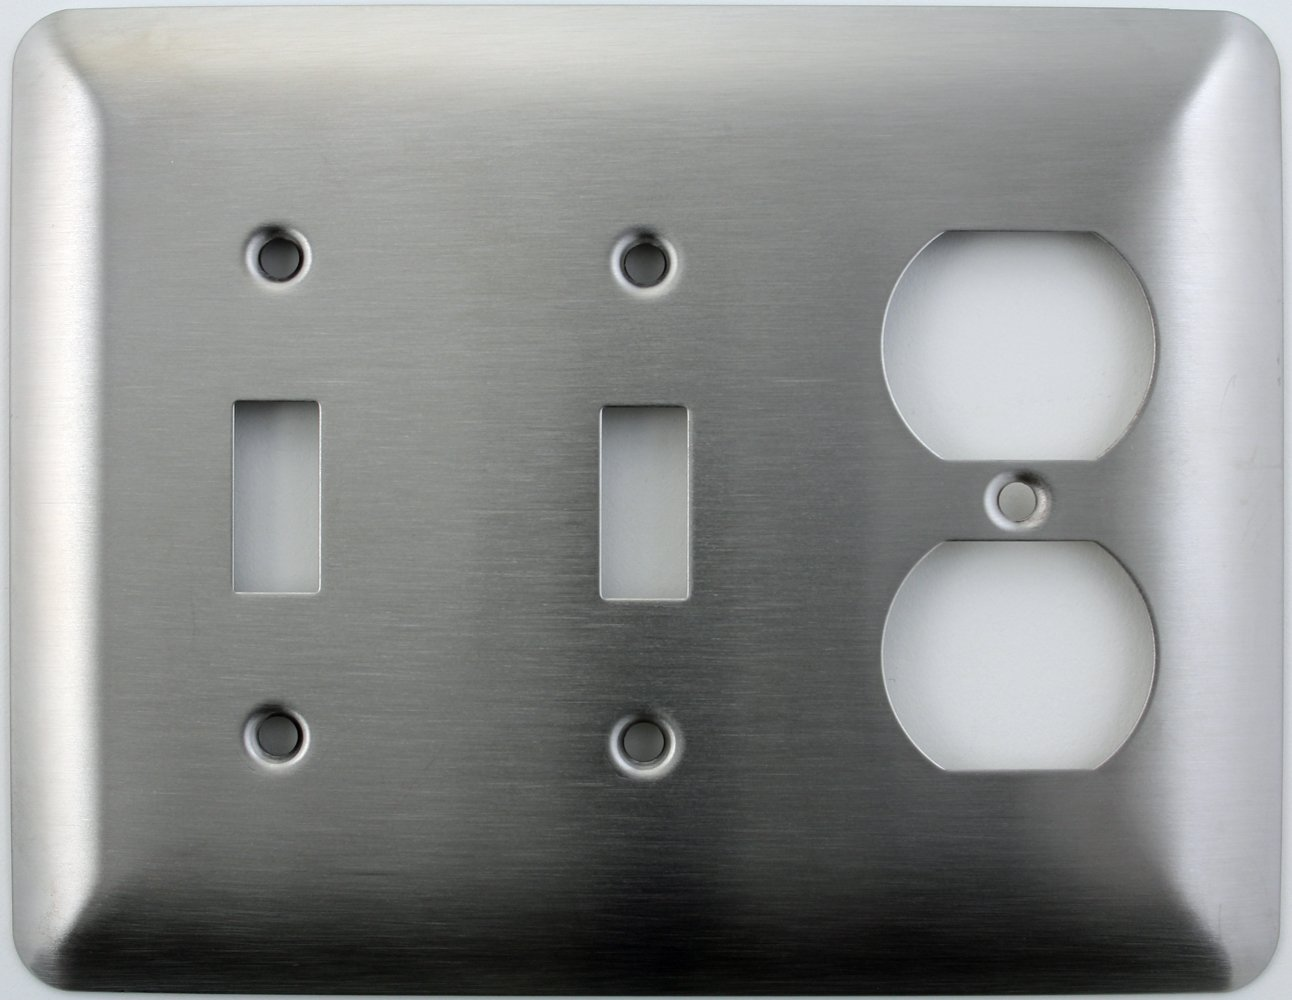 Mulberry Princess Style Satin Stainless Steel Two Gang Switch Plate - Two Toggle Light Switch Opening One Duplex Outlet Opening